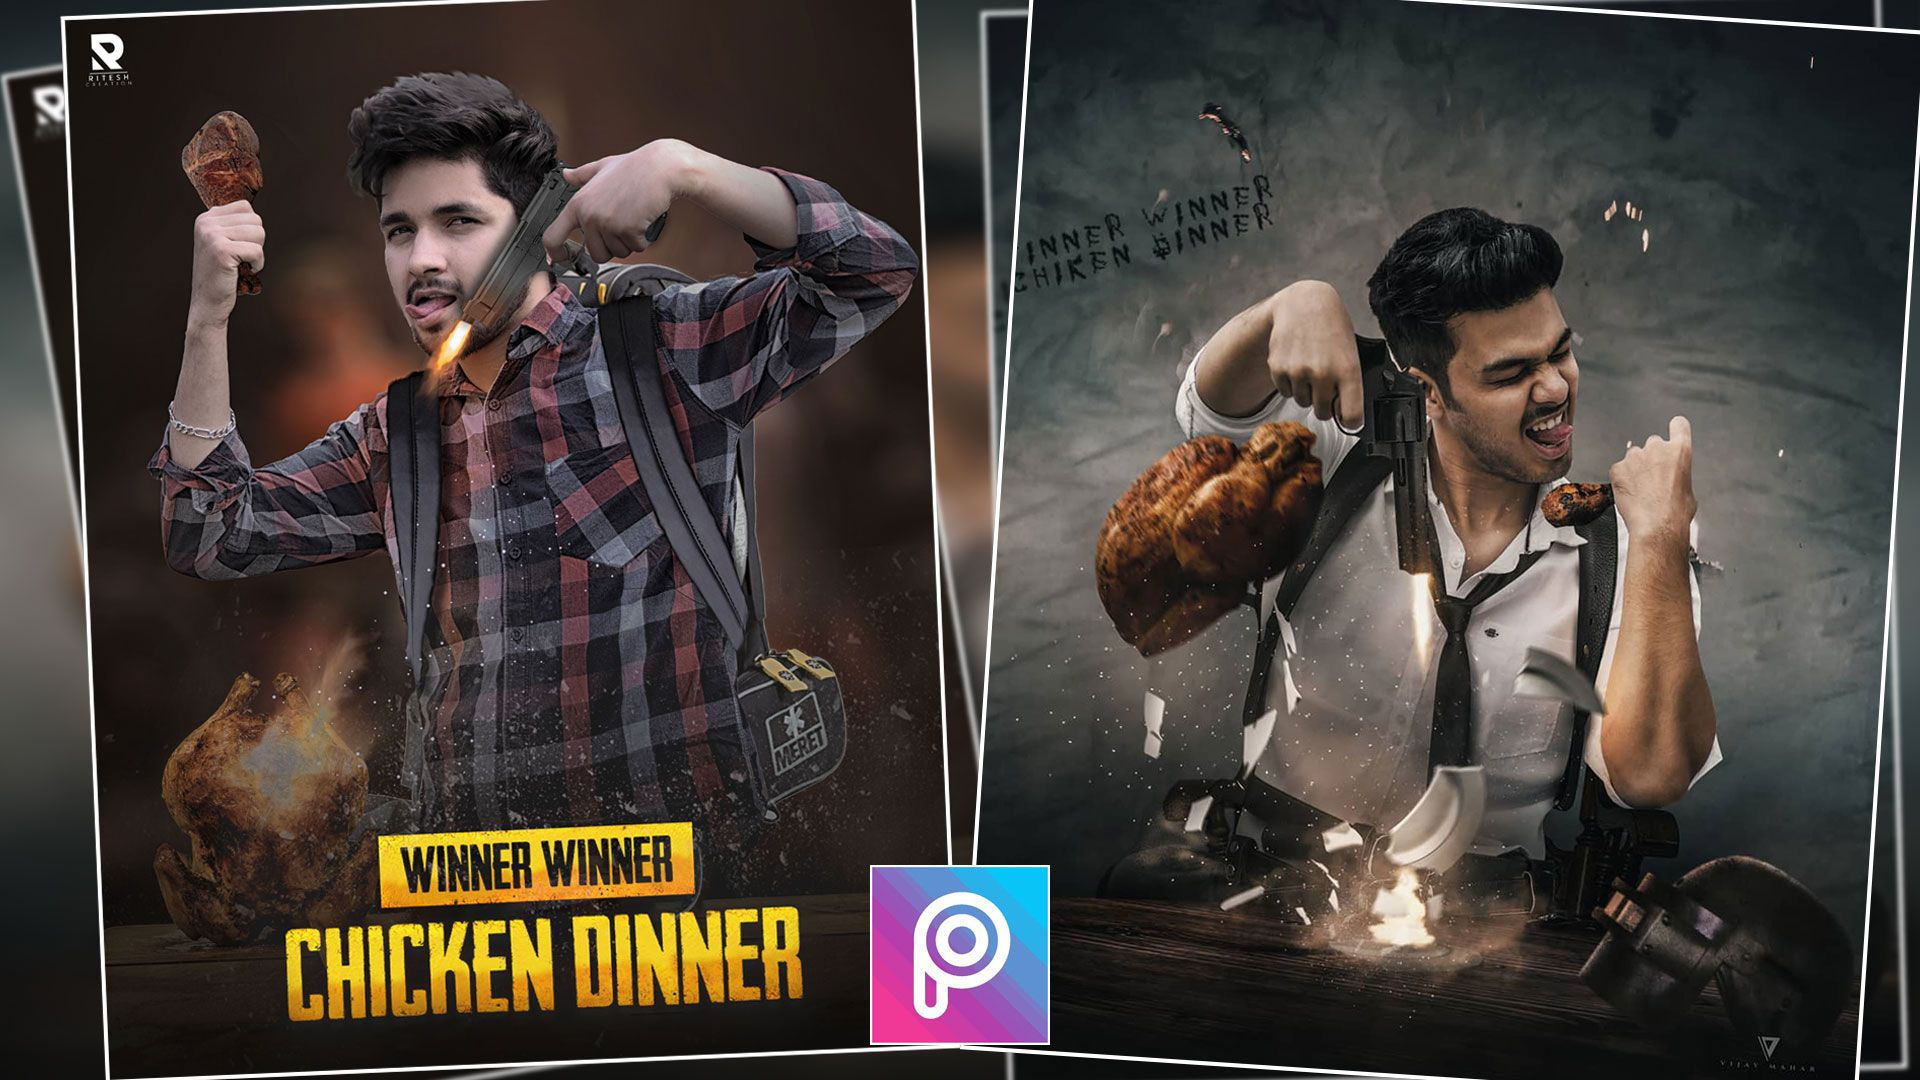 Pubg Mobile Editing Background Picsart And Photoshop In 2019